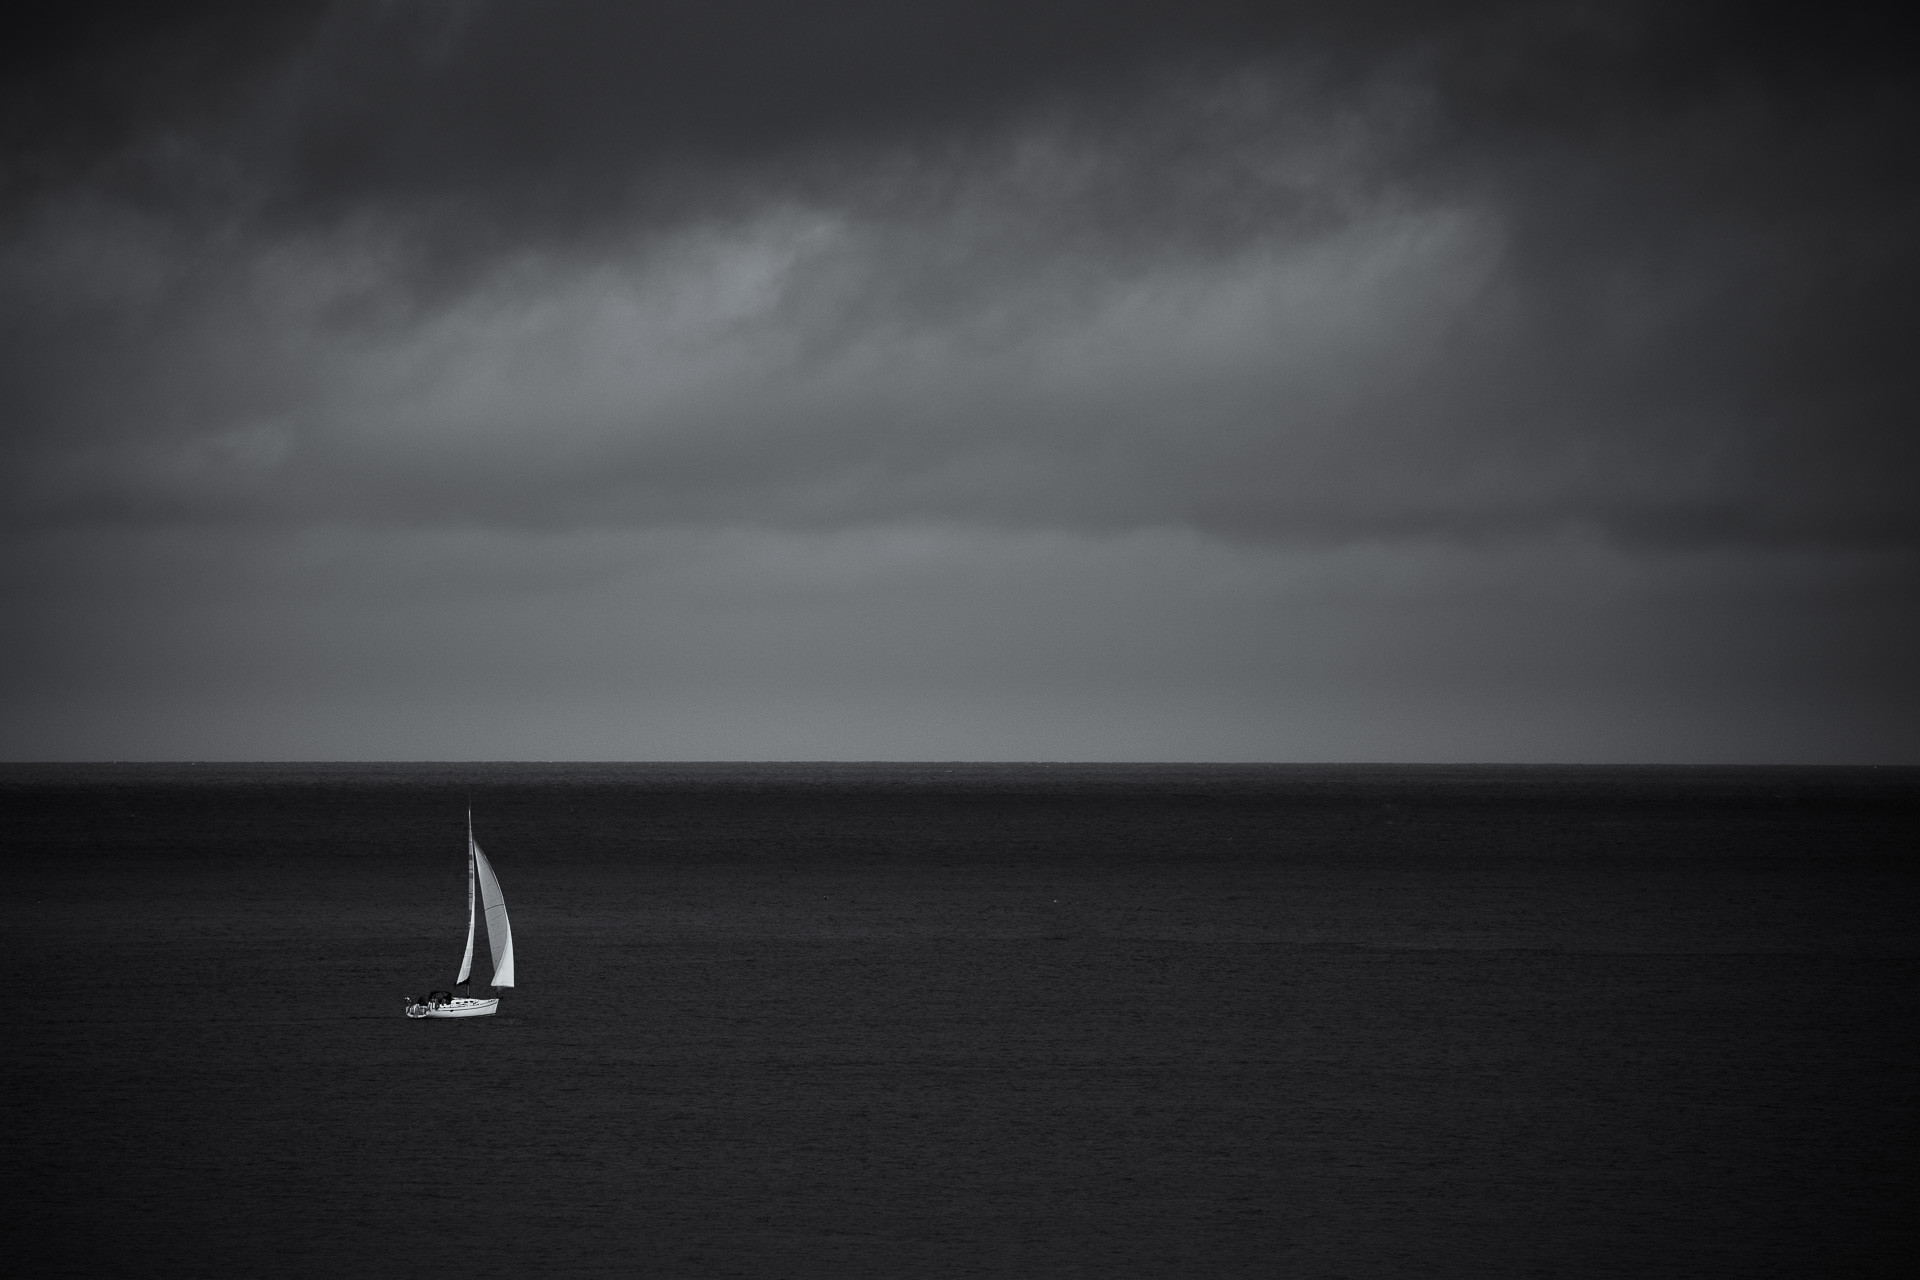 Sailing into the storm, Bretagne, Frankrijk - Canon EOS 6D mark II + Canon EF100-400mm f/4-5.6 L IS II op 400mm, f/5.6, 1/2000 sec. en iso100